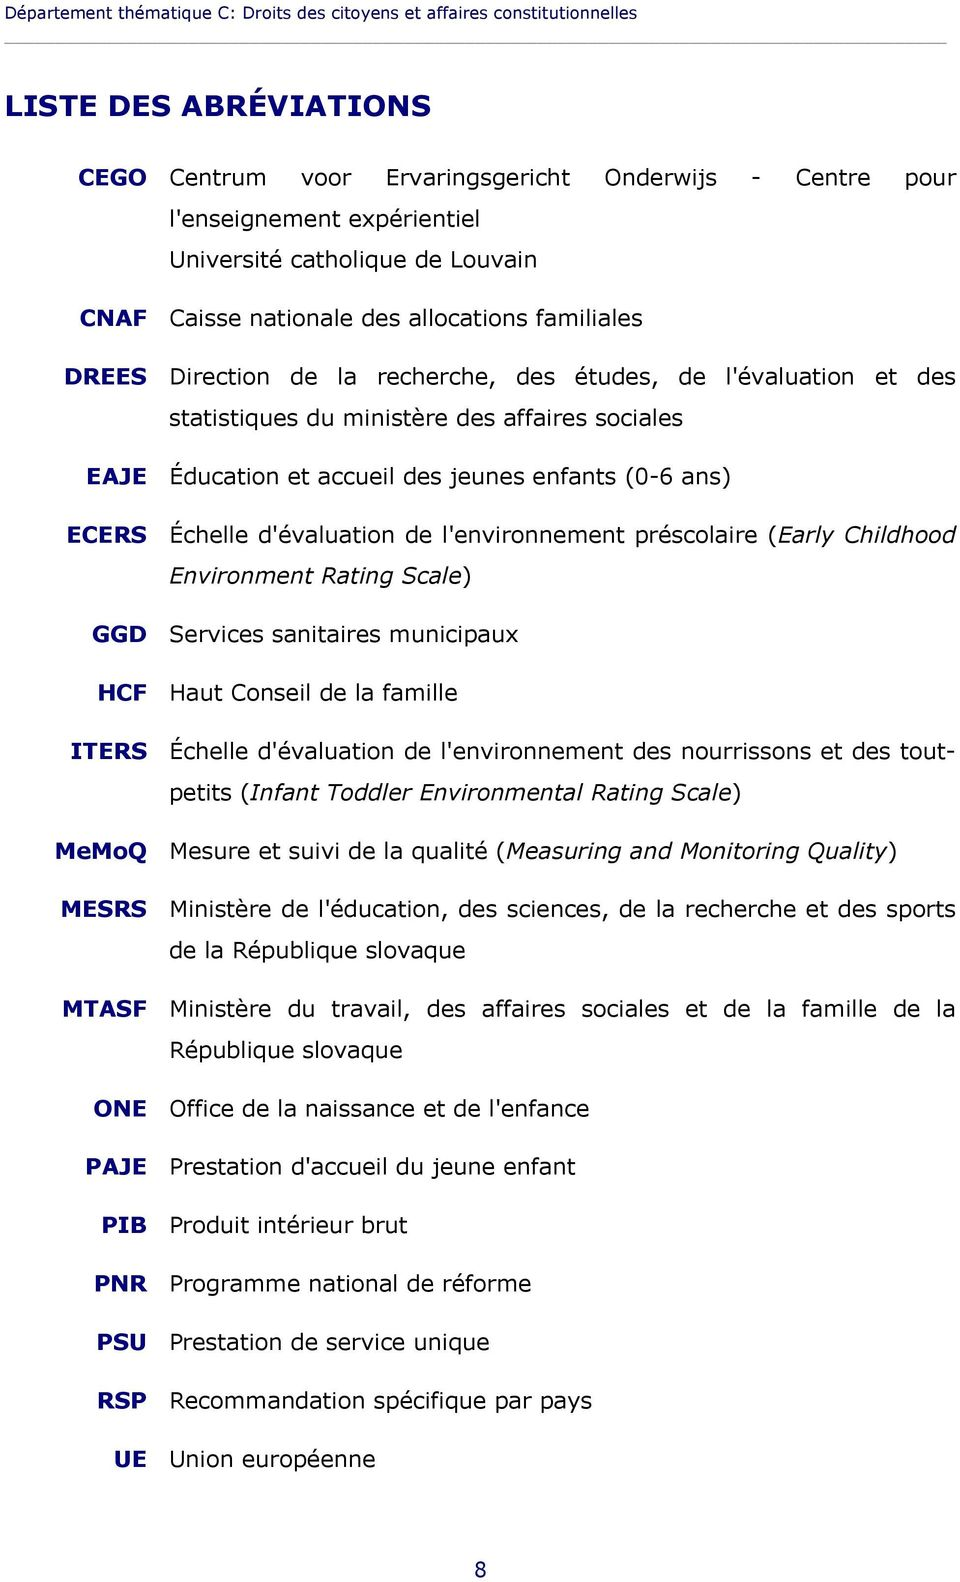 Éducation et accueil des jeunes enfants (0-6 ans) ECERS Échelle d'évaluation de l'environnement préscolaire (Early Childhood Environment Rating Scale) GGD Services sanitaires municipaux HCF Haut